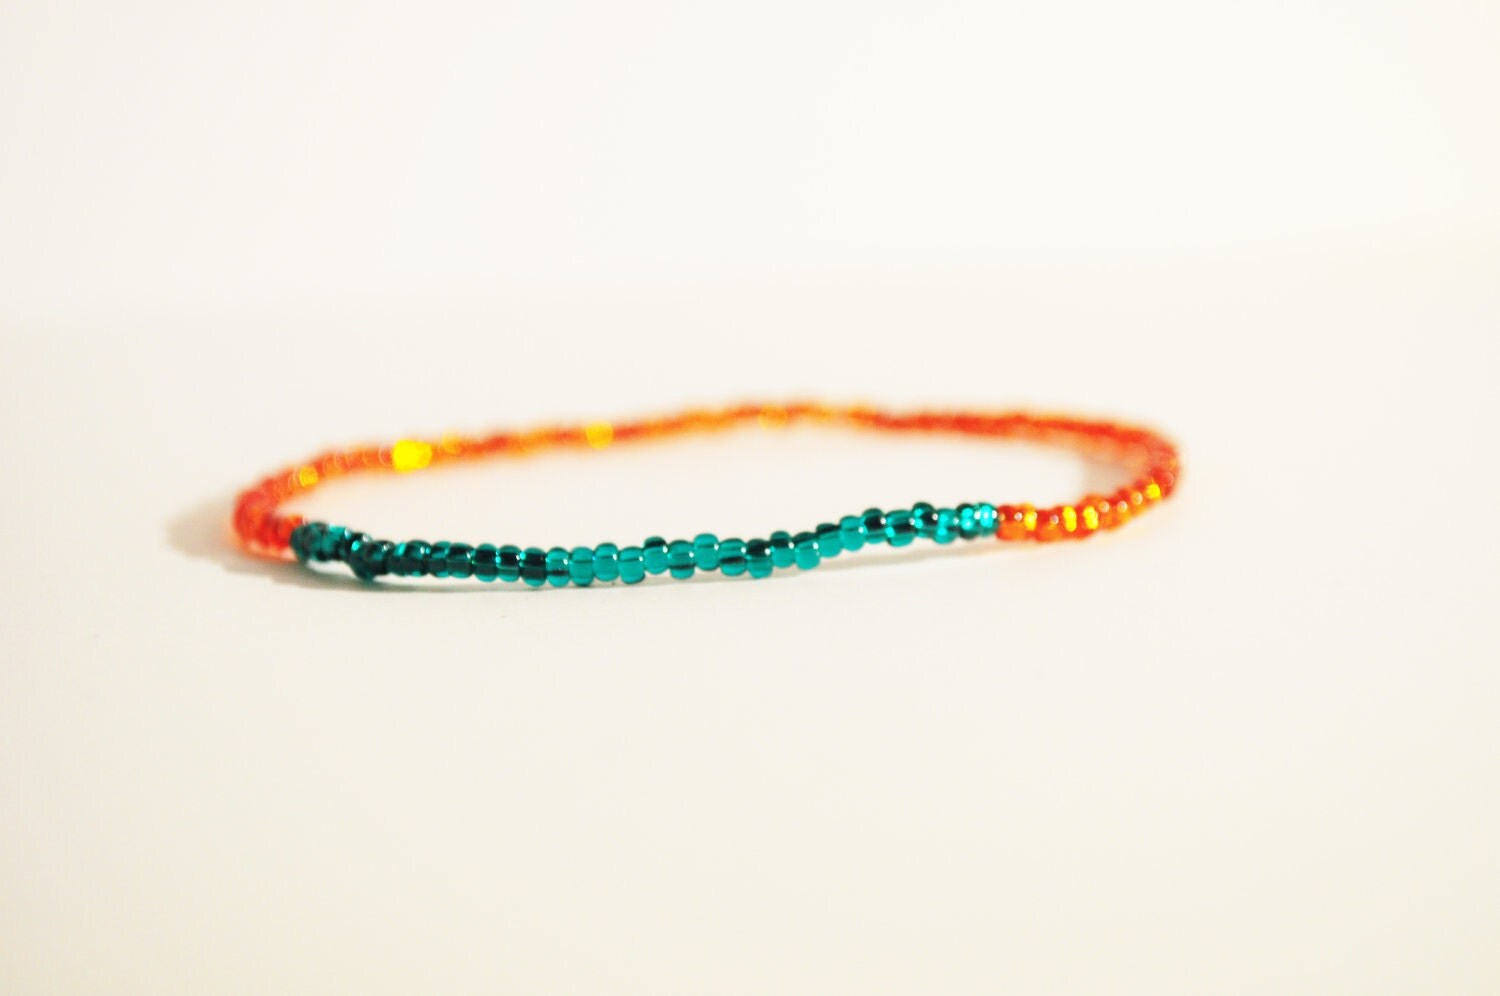 STACKING BRACELET - Vibrant Tangerine Orange and Teal Glam Seed Beads - ThePrettyDoGood